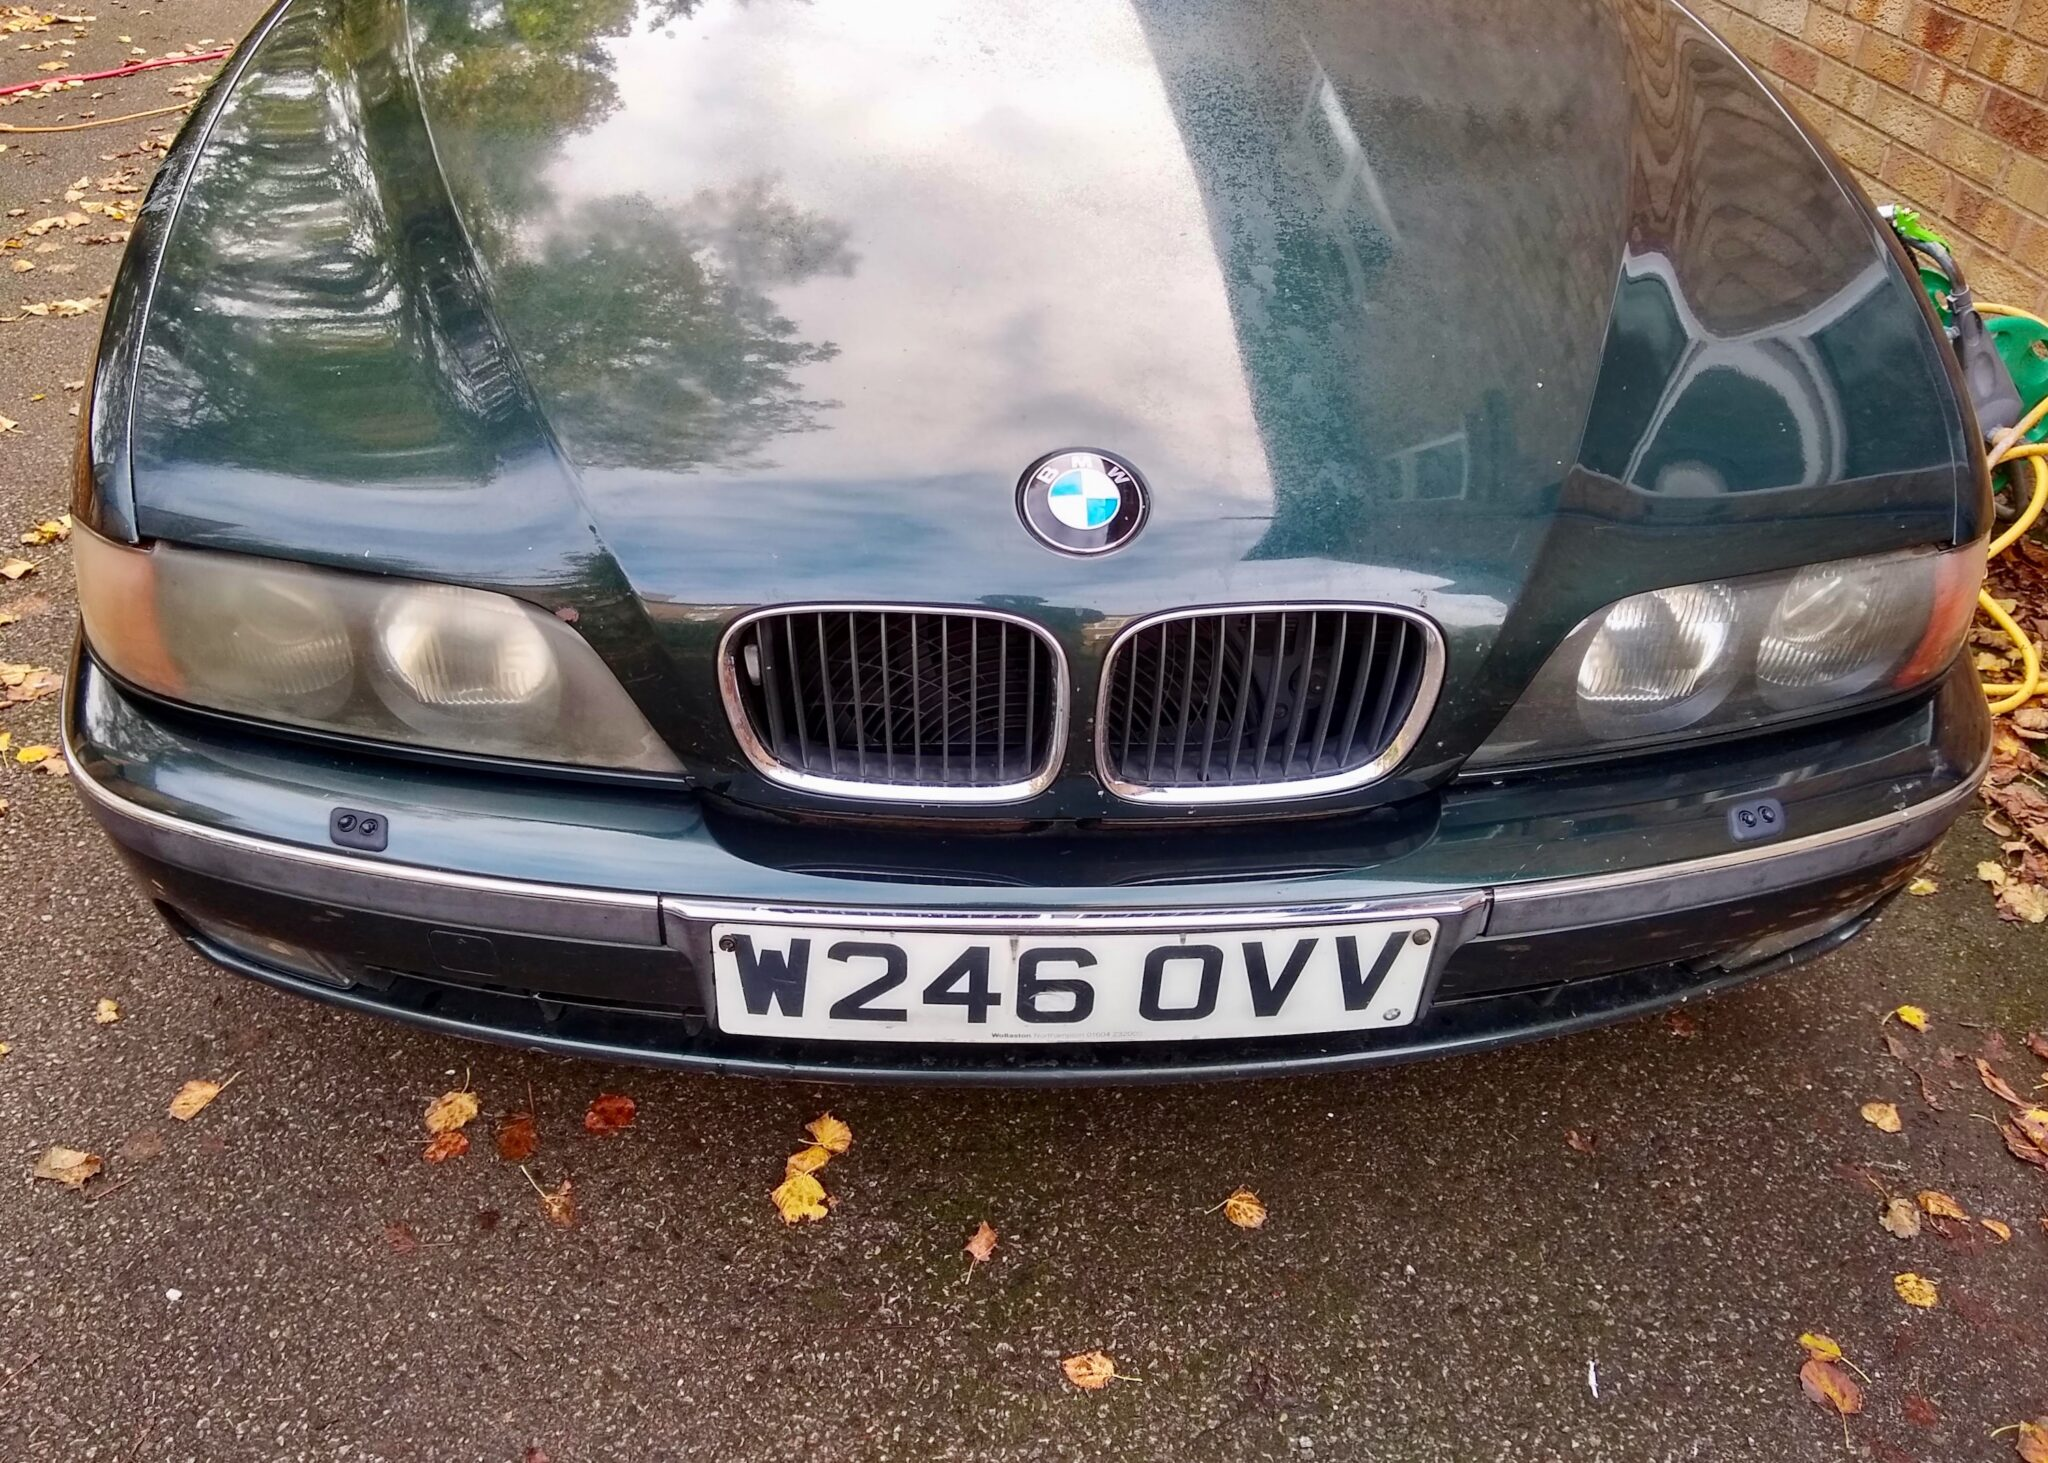 BMW, E39, BMW 528i, project car, E39 Touring, Project Improvvisatore, N2G, Not 2 Grand, Not2Grand, not2grand.co.uk